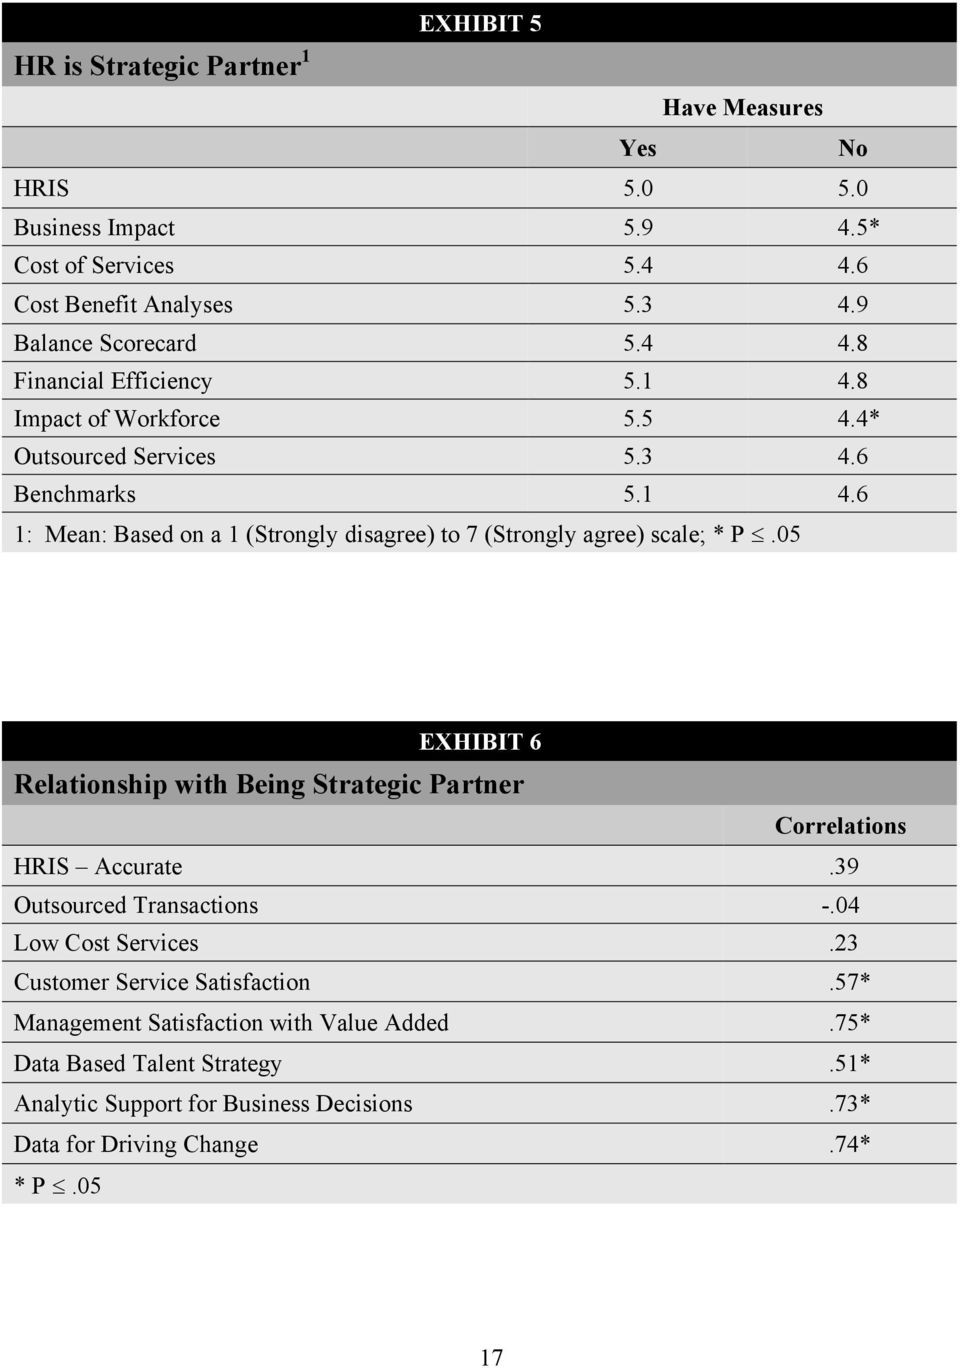 05 EXHIBIT 6 Relationship with Being Strategic Partner Correlations HRIS Accurate.39 Outsourced Transactions -.04 Low Cost Services.23 Customer Service Satisfaction.